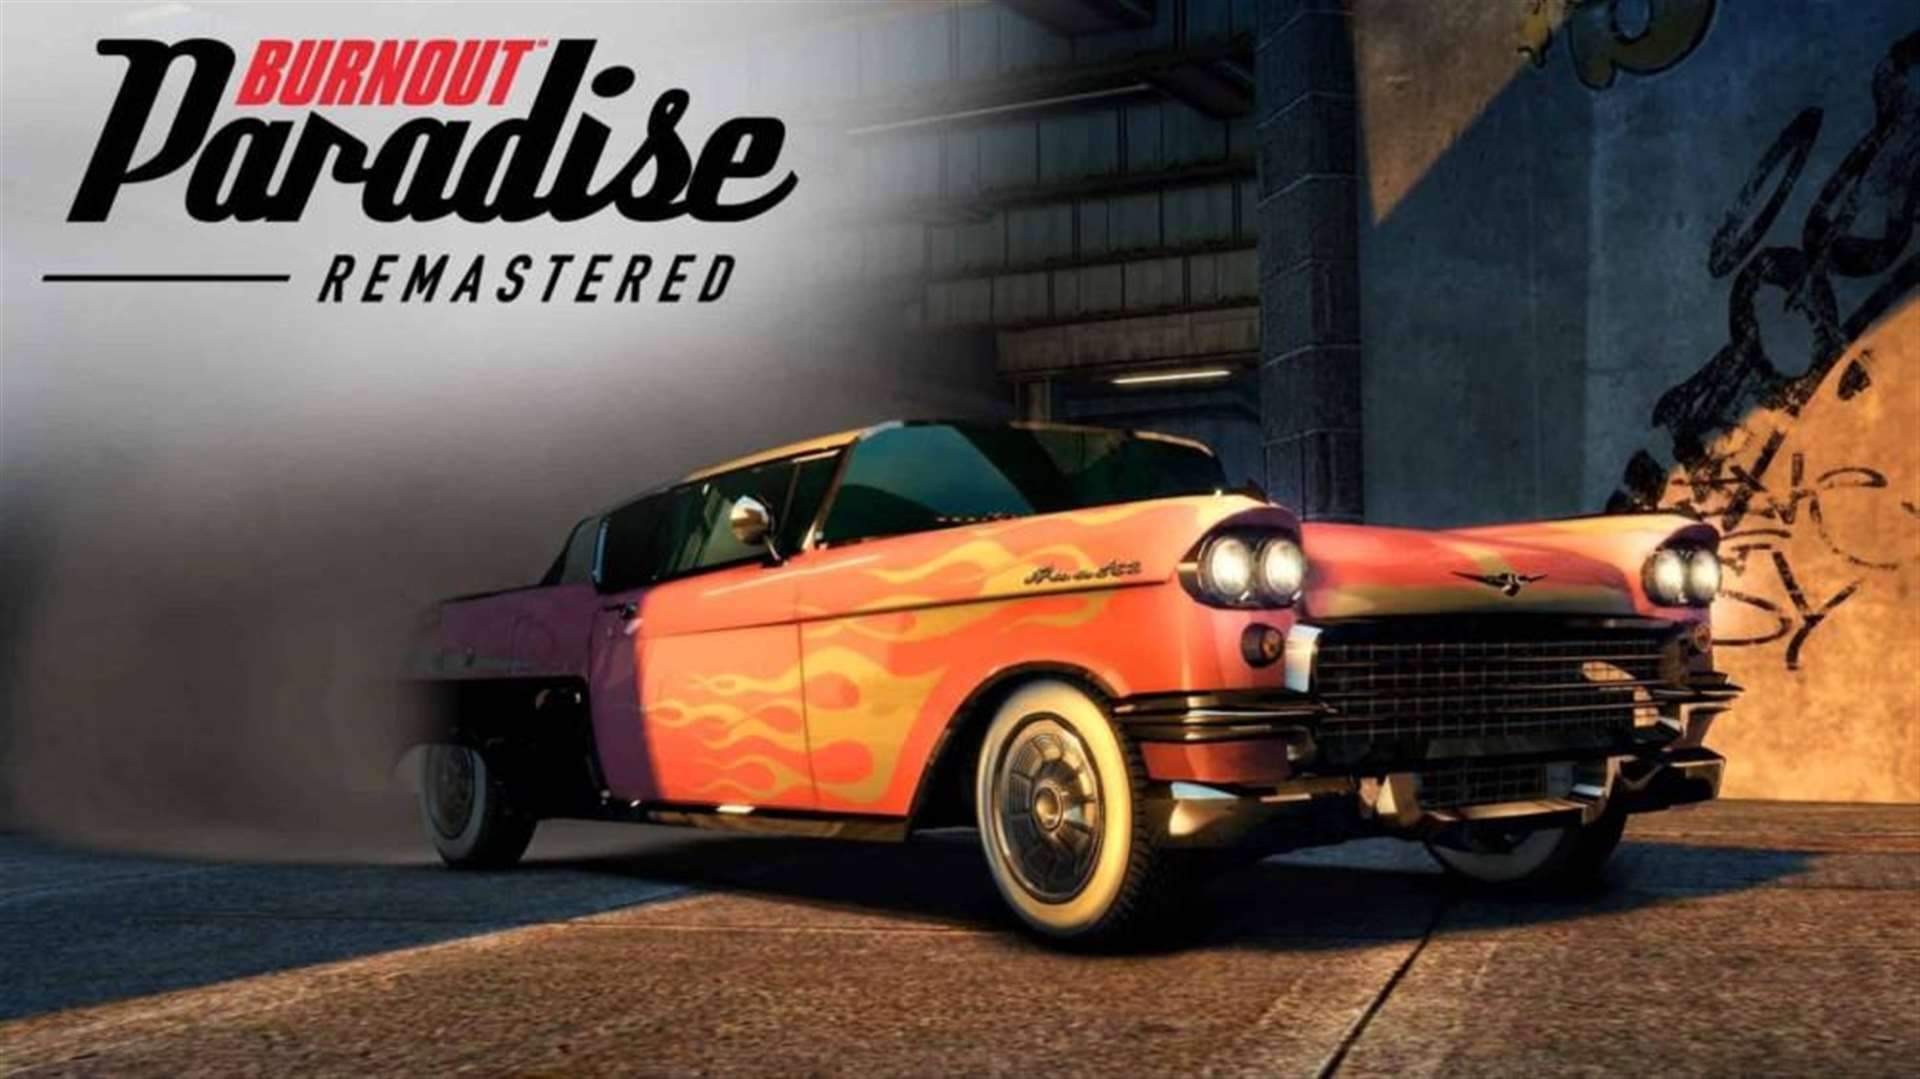 Console Corner: Burnout Paradise Remastered